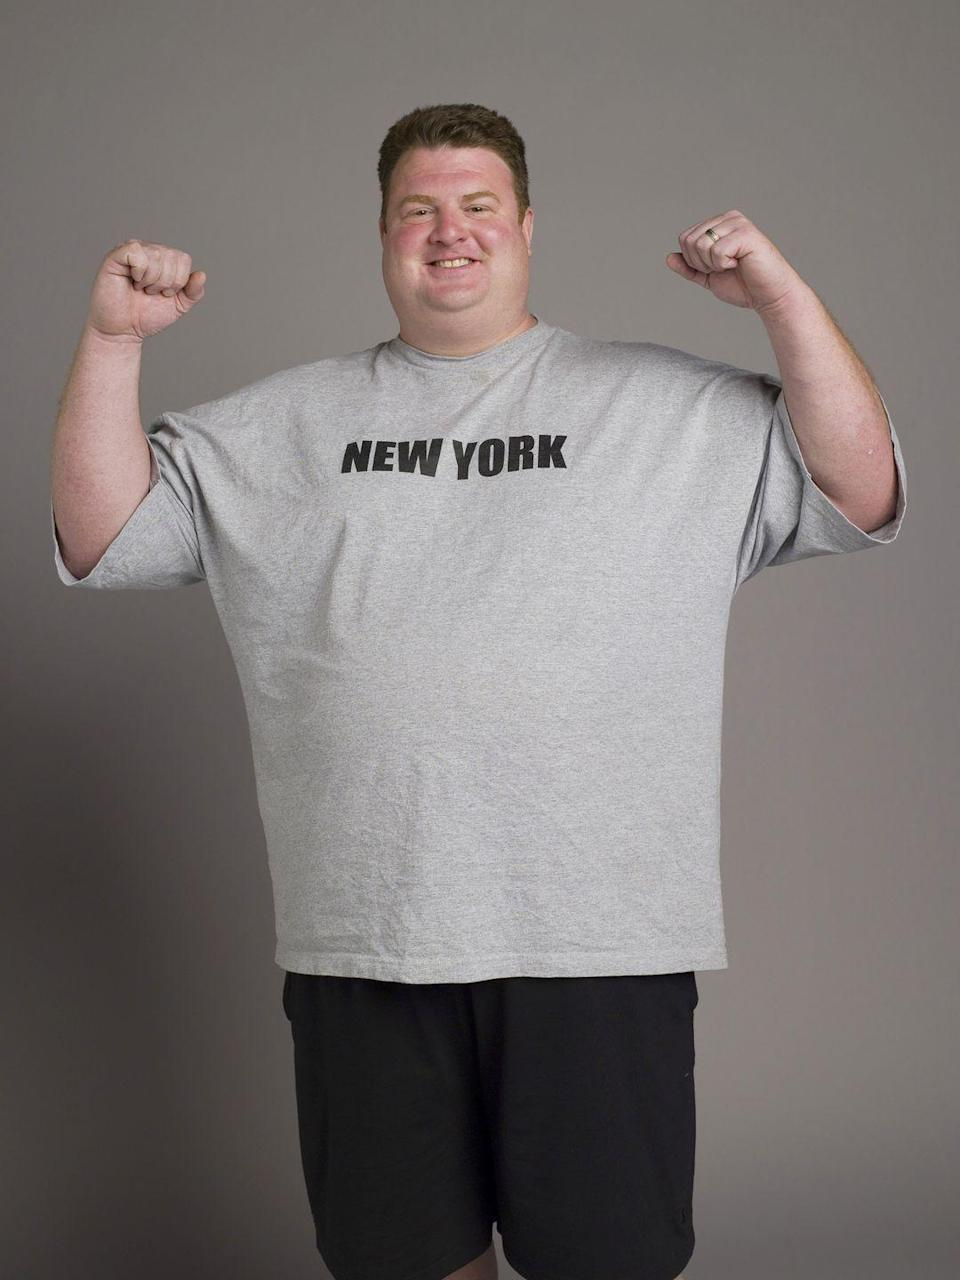 <p>The 35-year-old New Yorker was 407 pounds at the start of the show, making him the largest contestant the show had ever seen at that point. Given his size, many people didn't think he could win.</p>